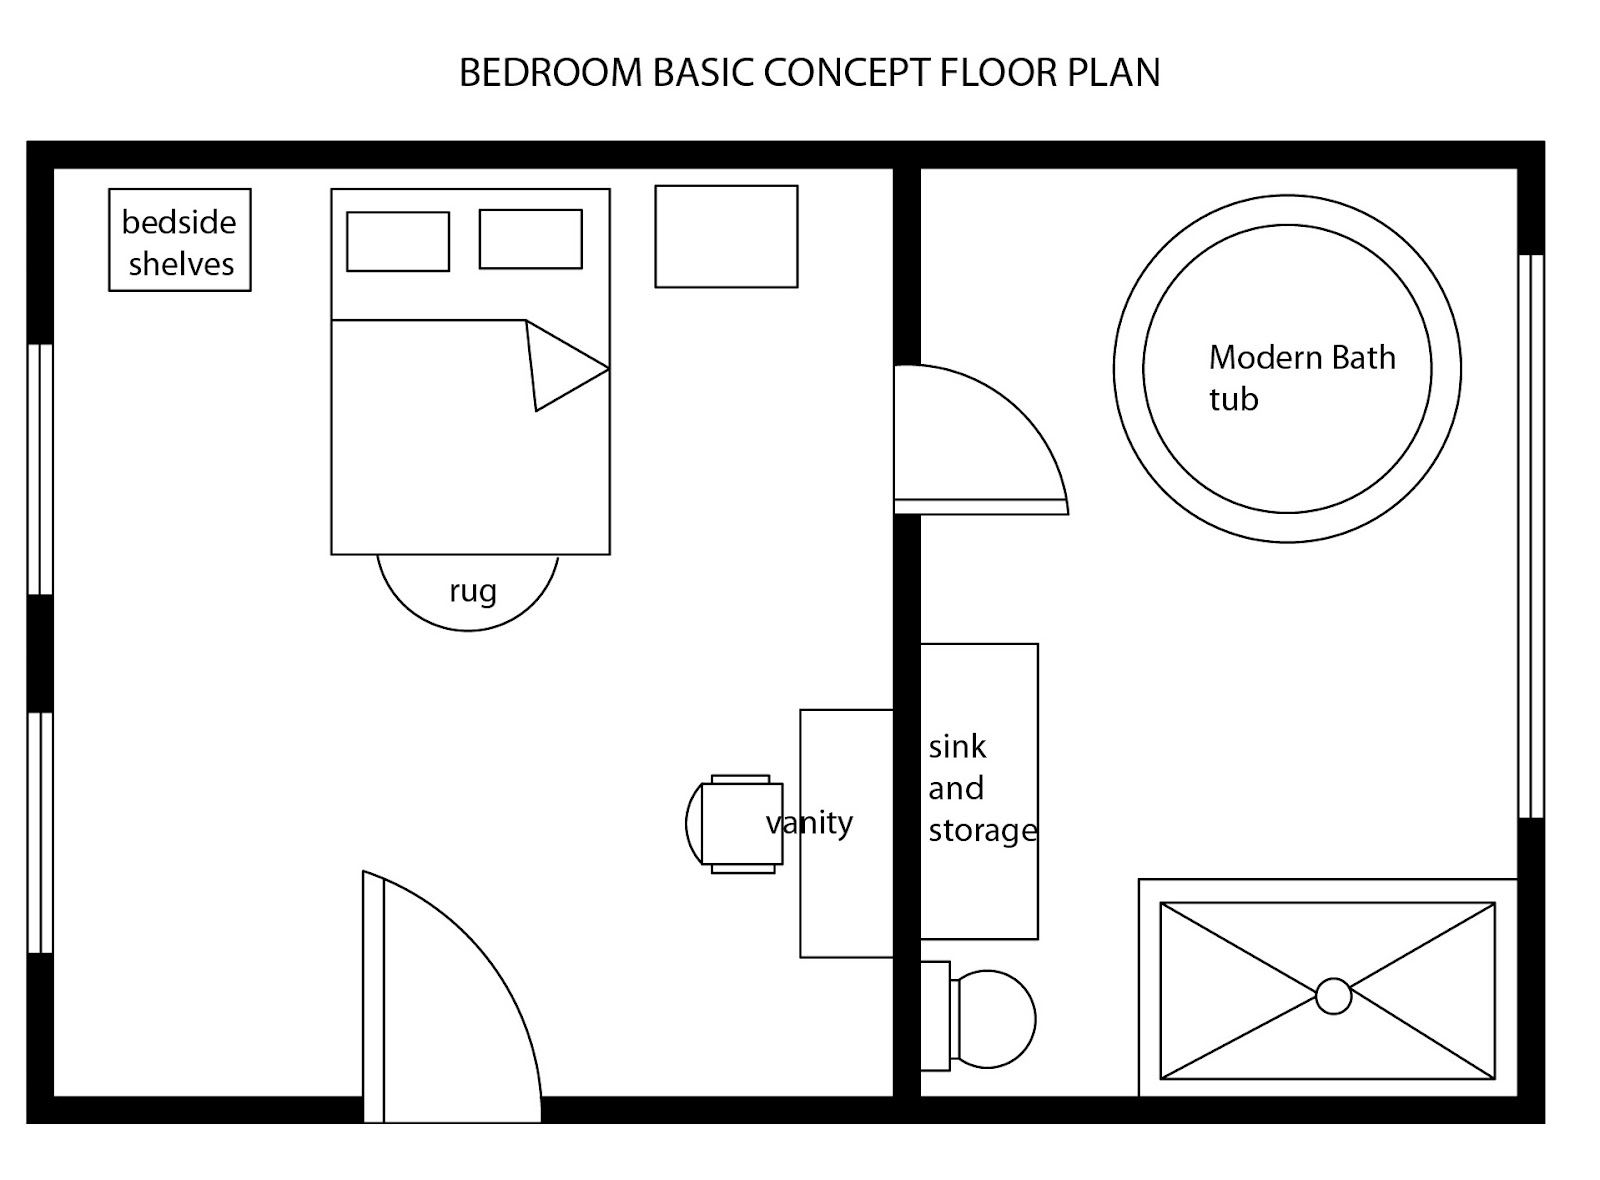 Design floor plan for bathroom home decorating ideasbathroom interior design - Floor plan for one bedroom ...